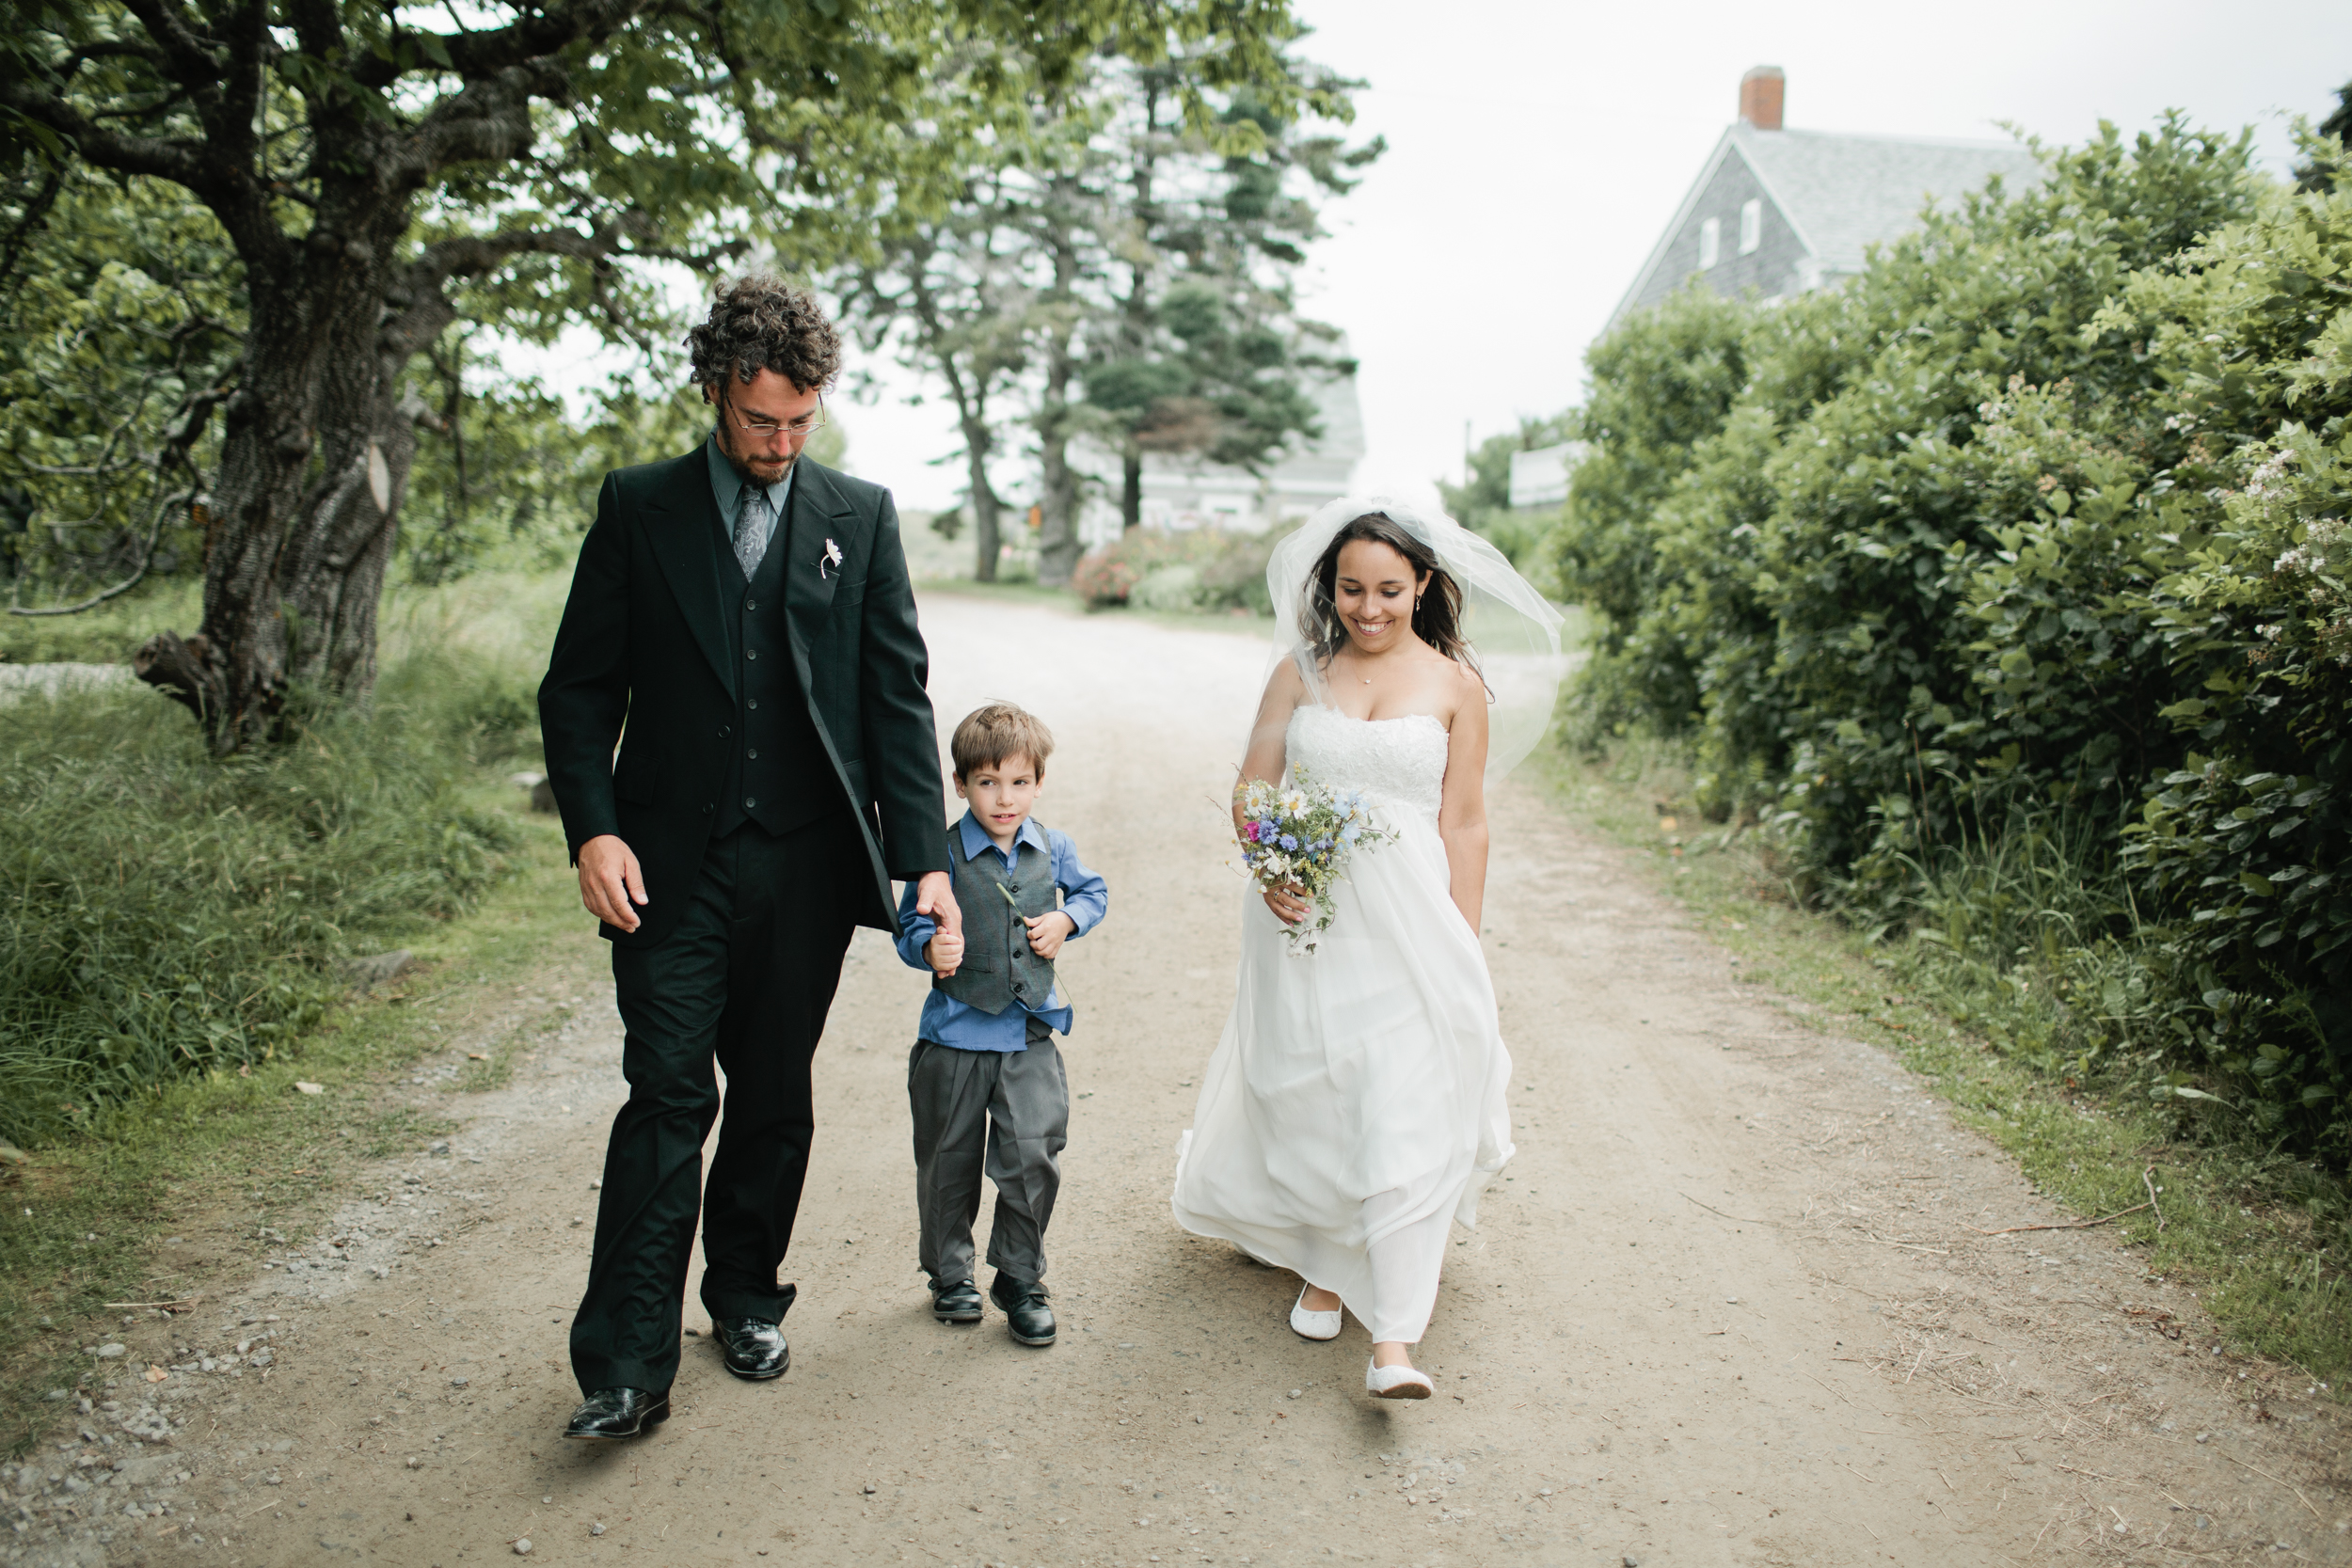 Monhegan-Island-Wedding-98.jpg